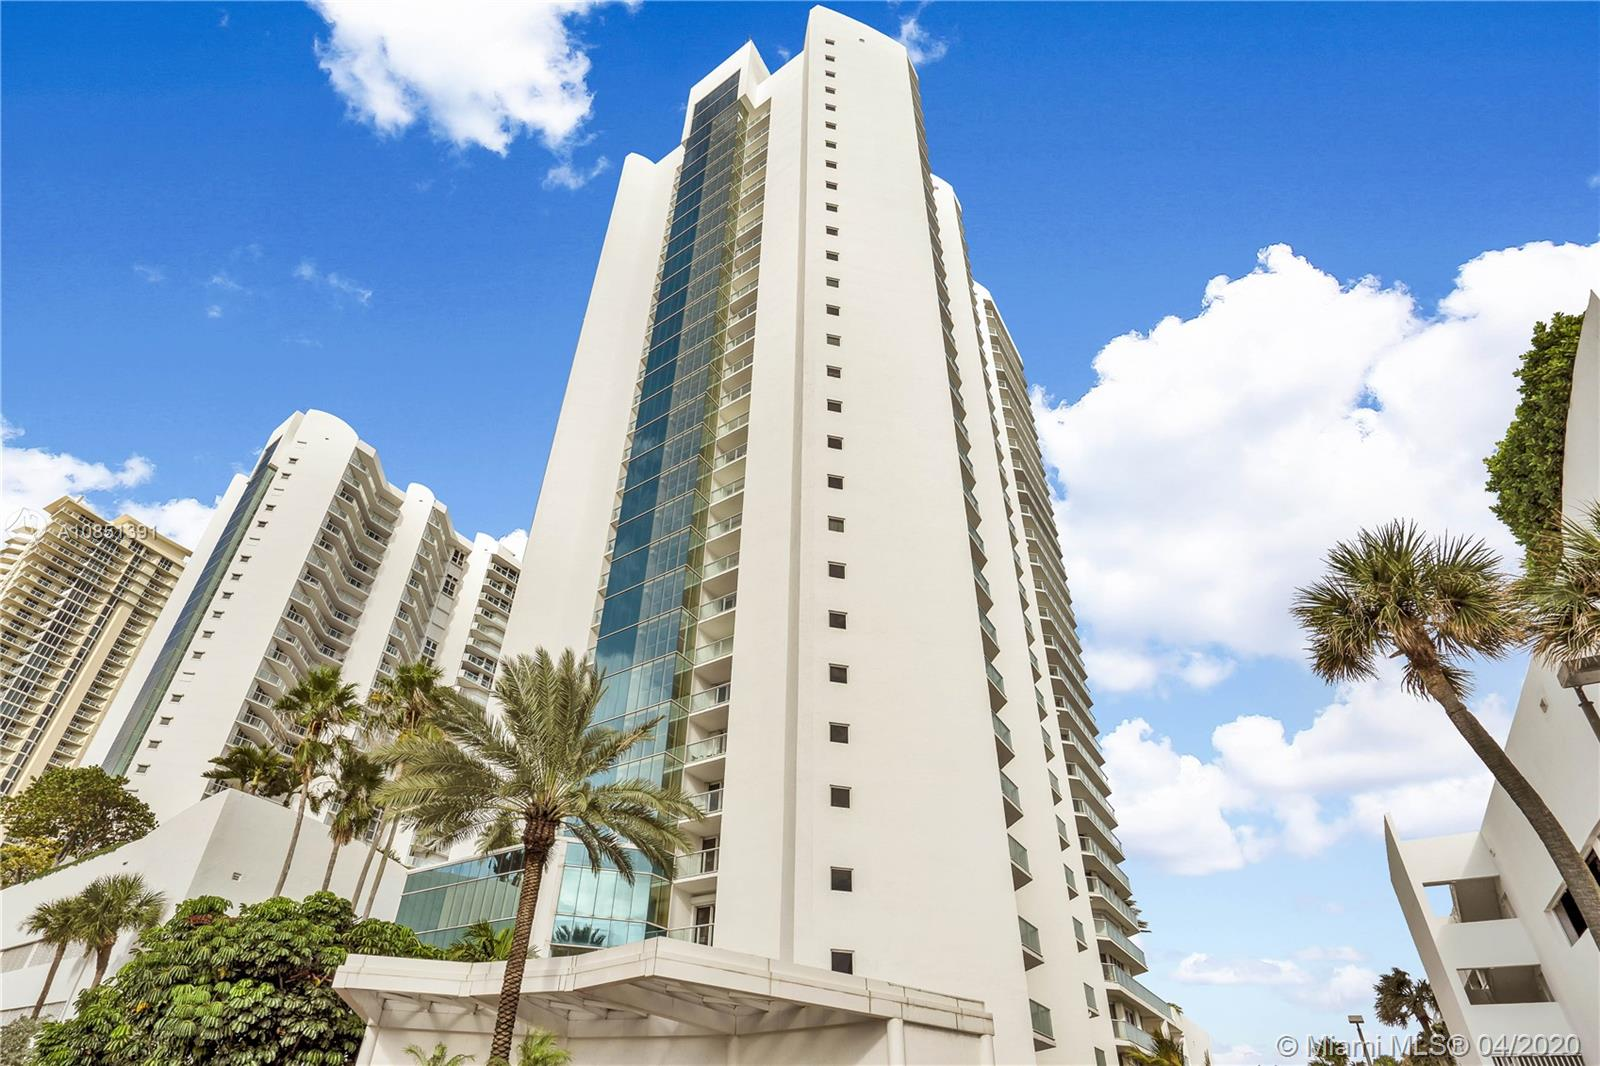 Oceania Two #2128 - 16445 Collins Ave #2128, Sunny Isles Beach, FL 33160